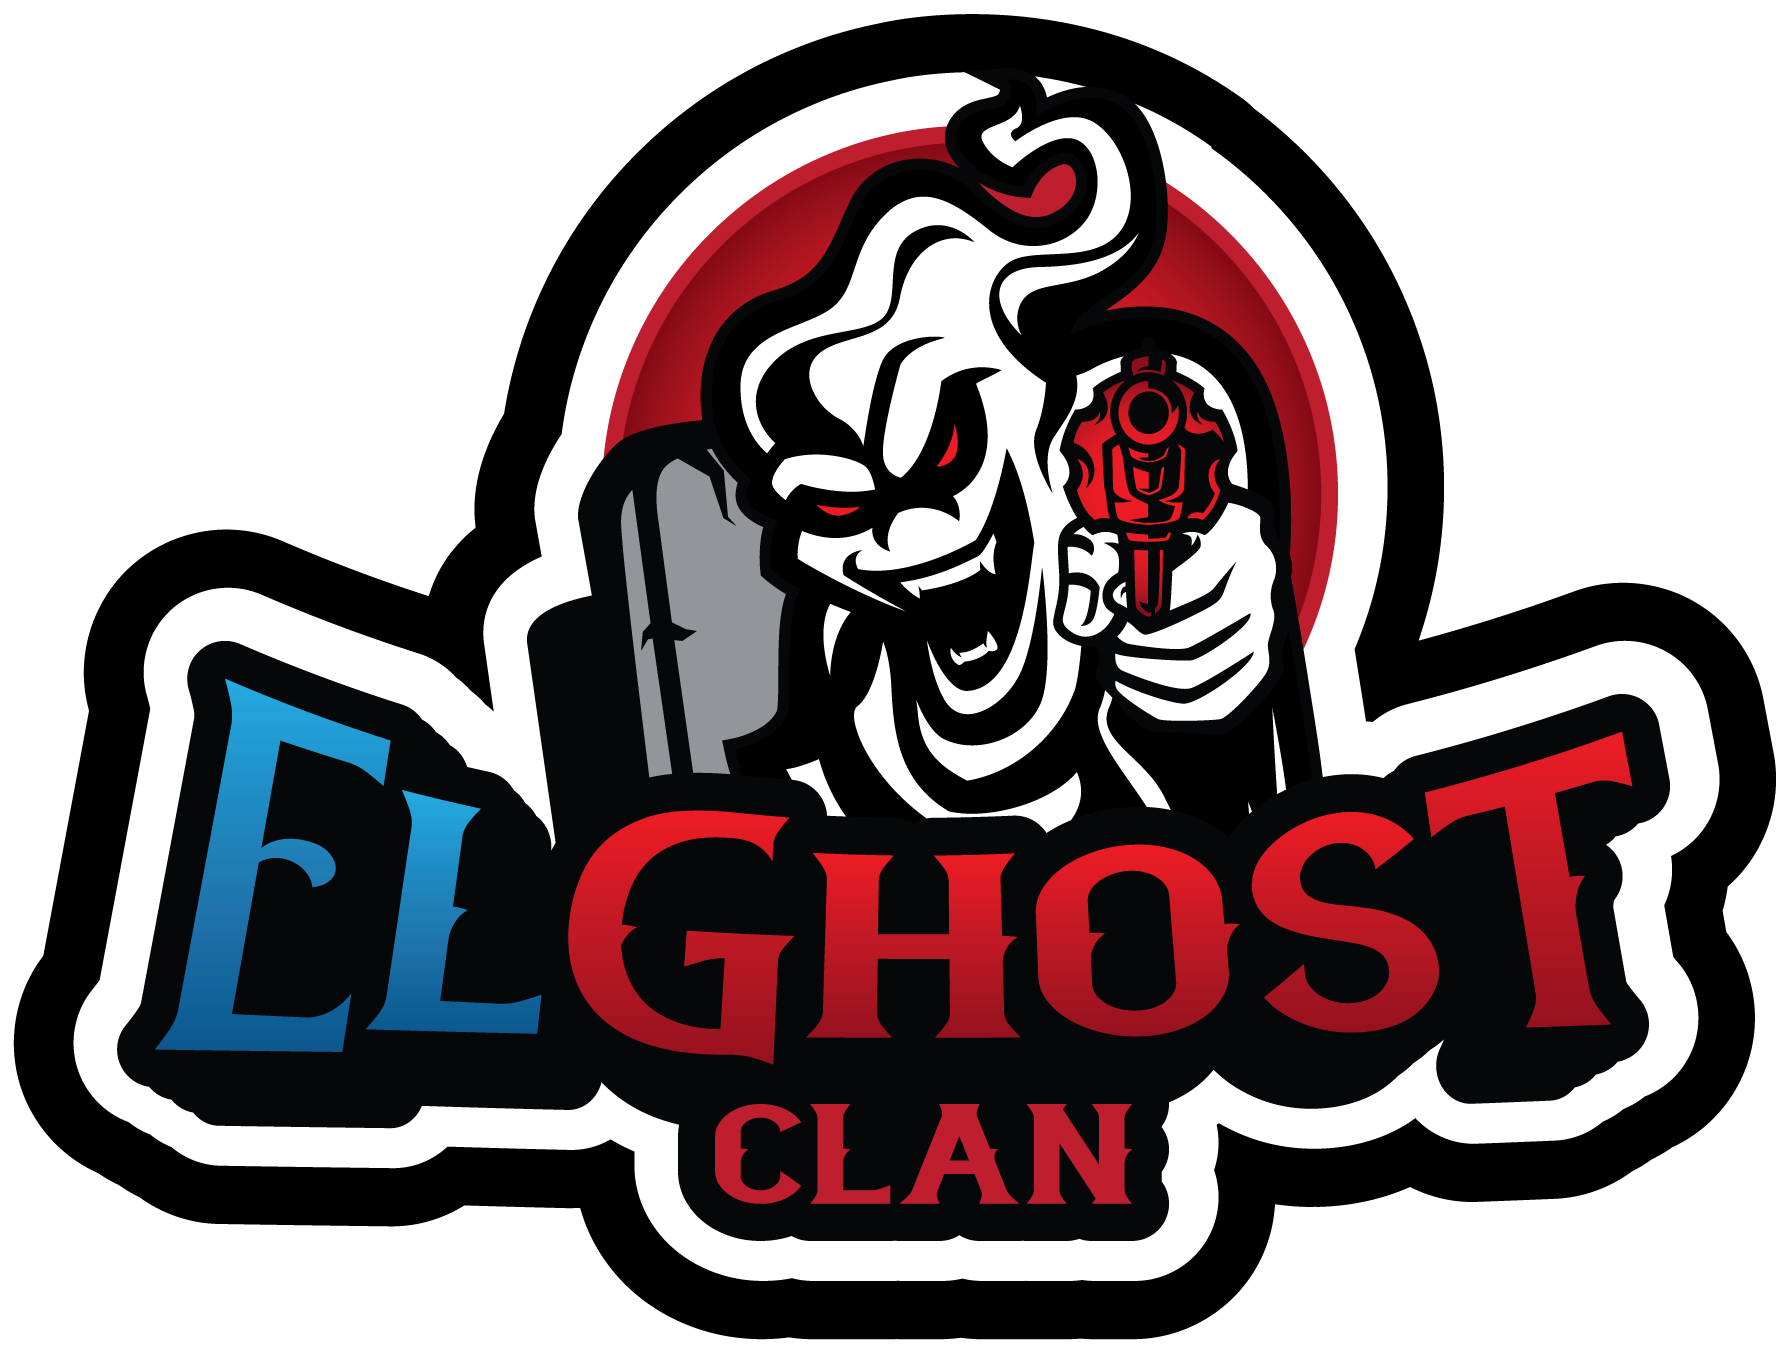 EL GHOST CLAN